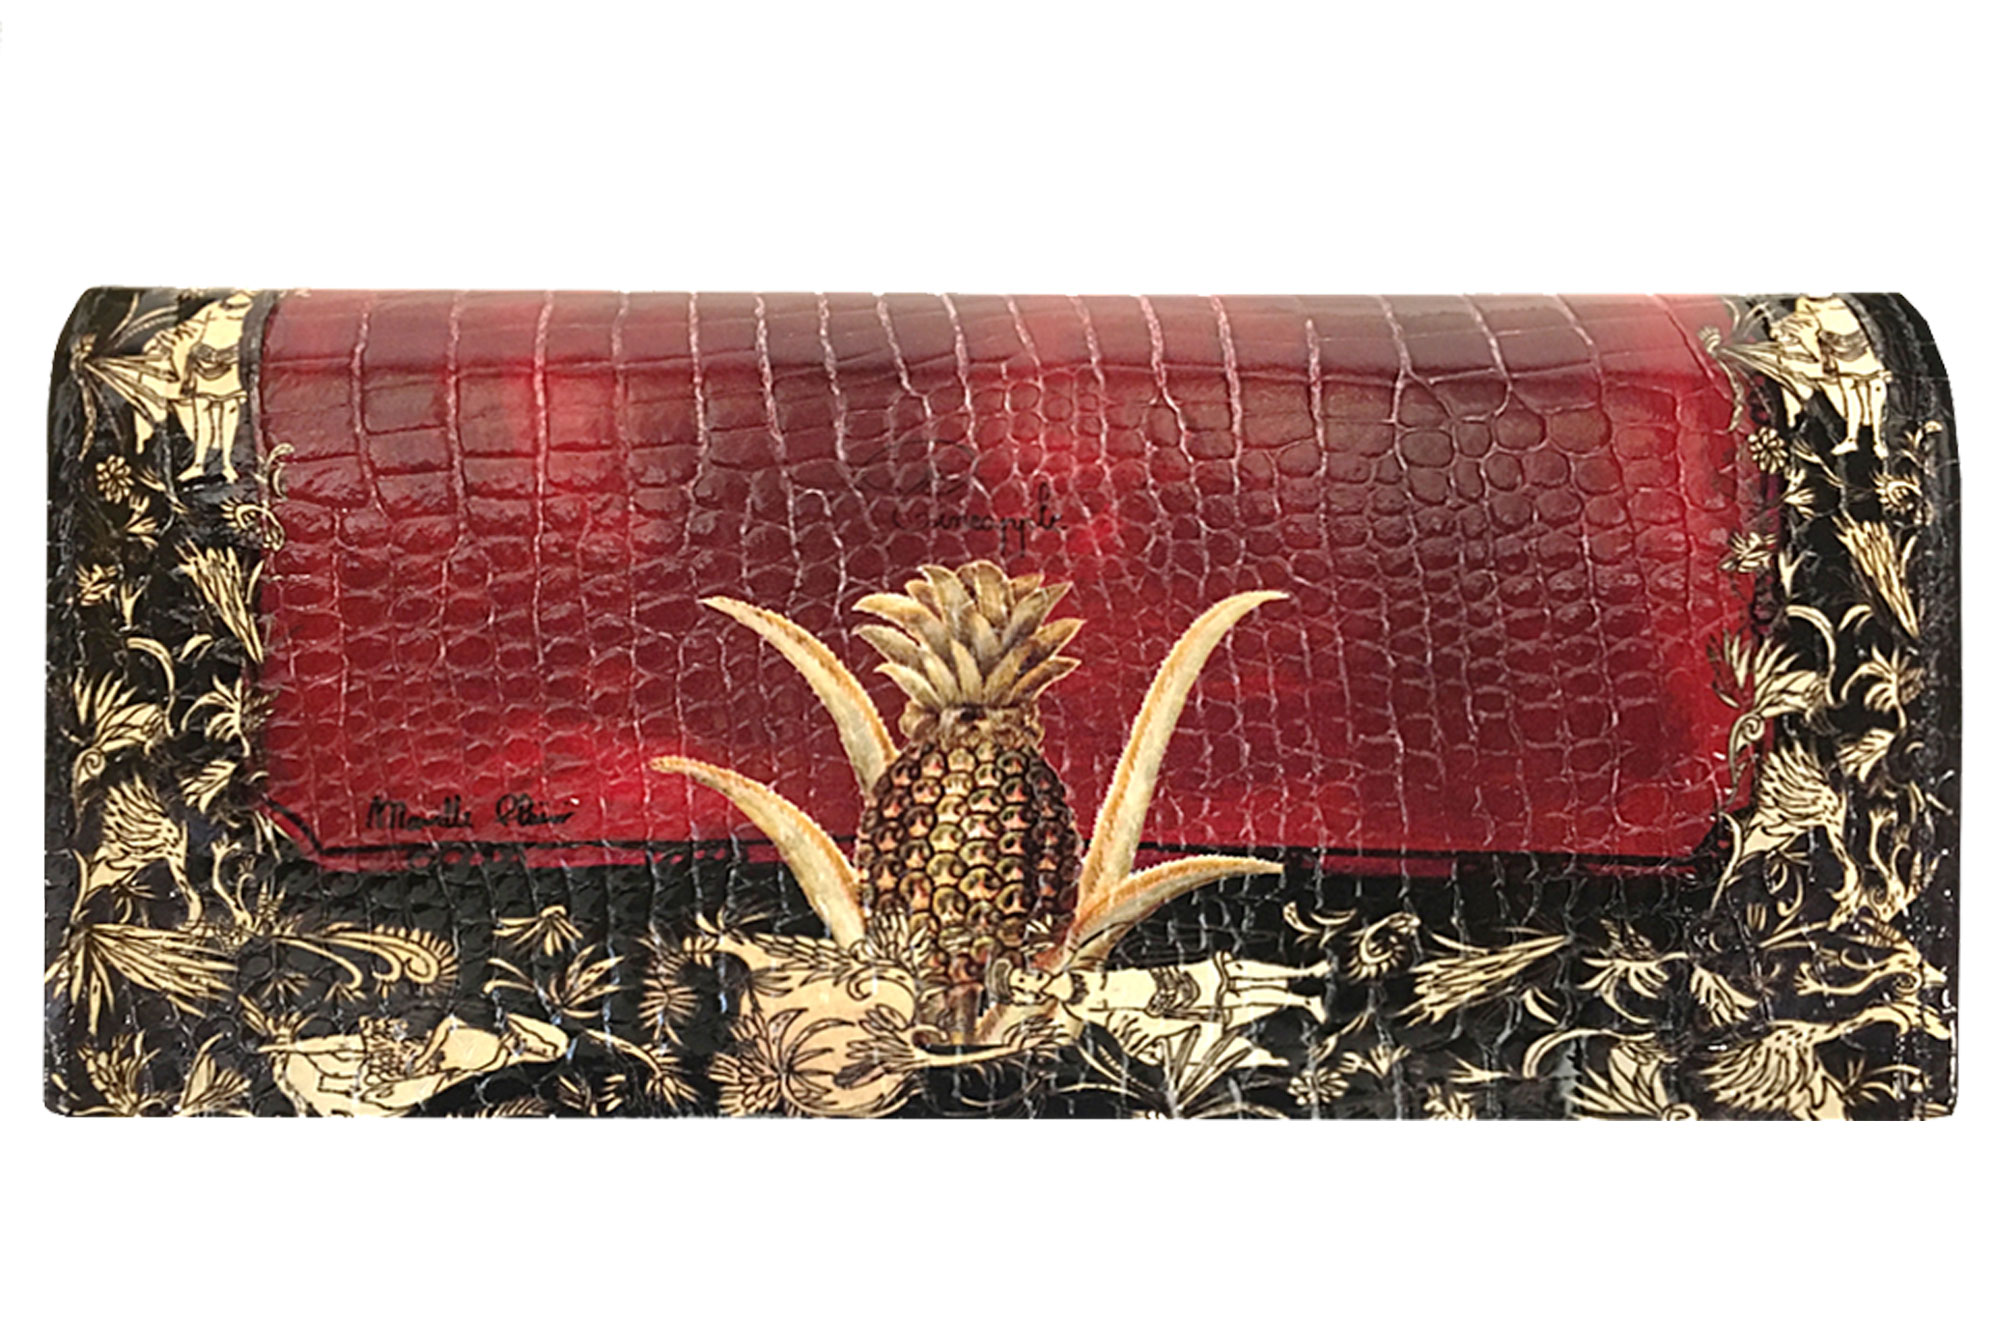 Marielle Plaisir Clutch from the Les Barbares's Collection